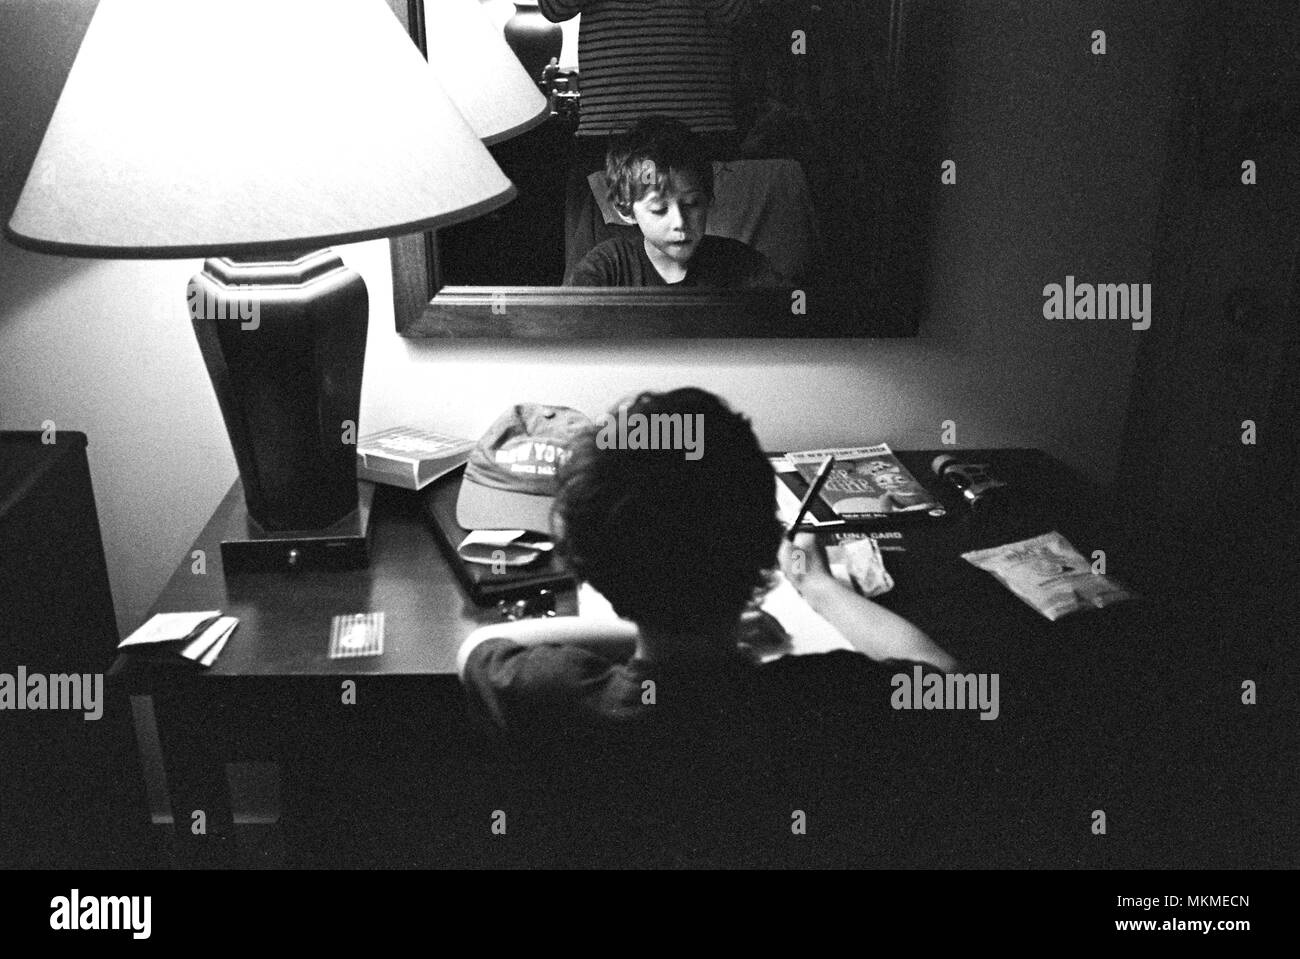 Six year old boy writing postcards in a hotel room, Hotel Pennsylvania  New York City, United States of America. - Stock Image